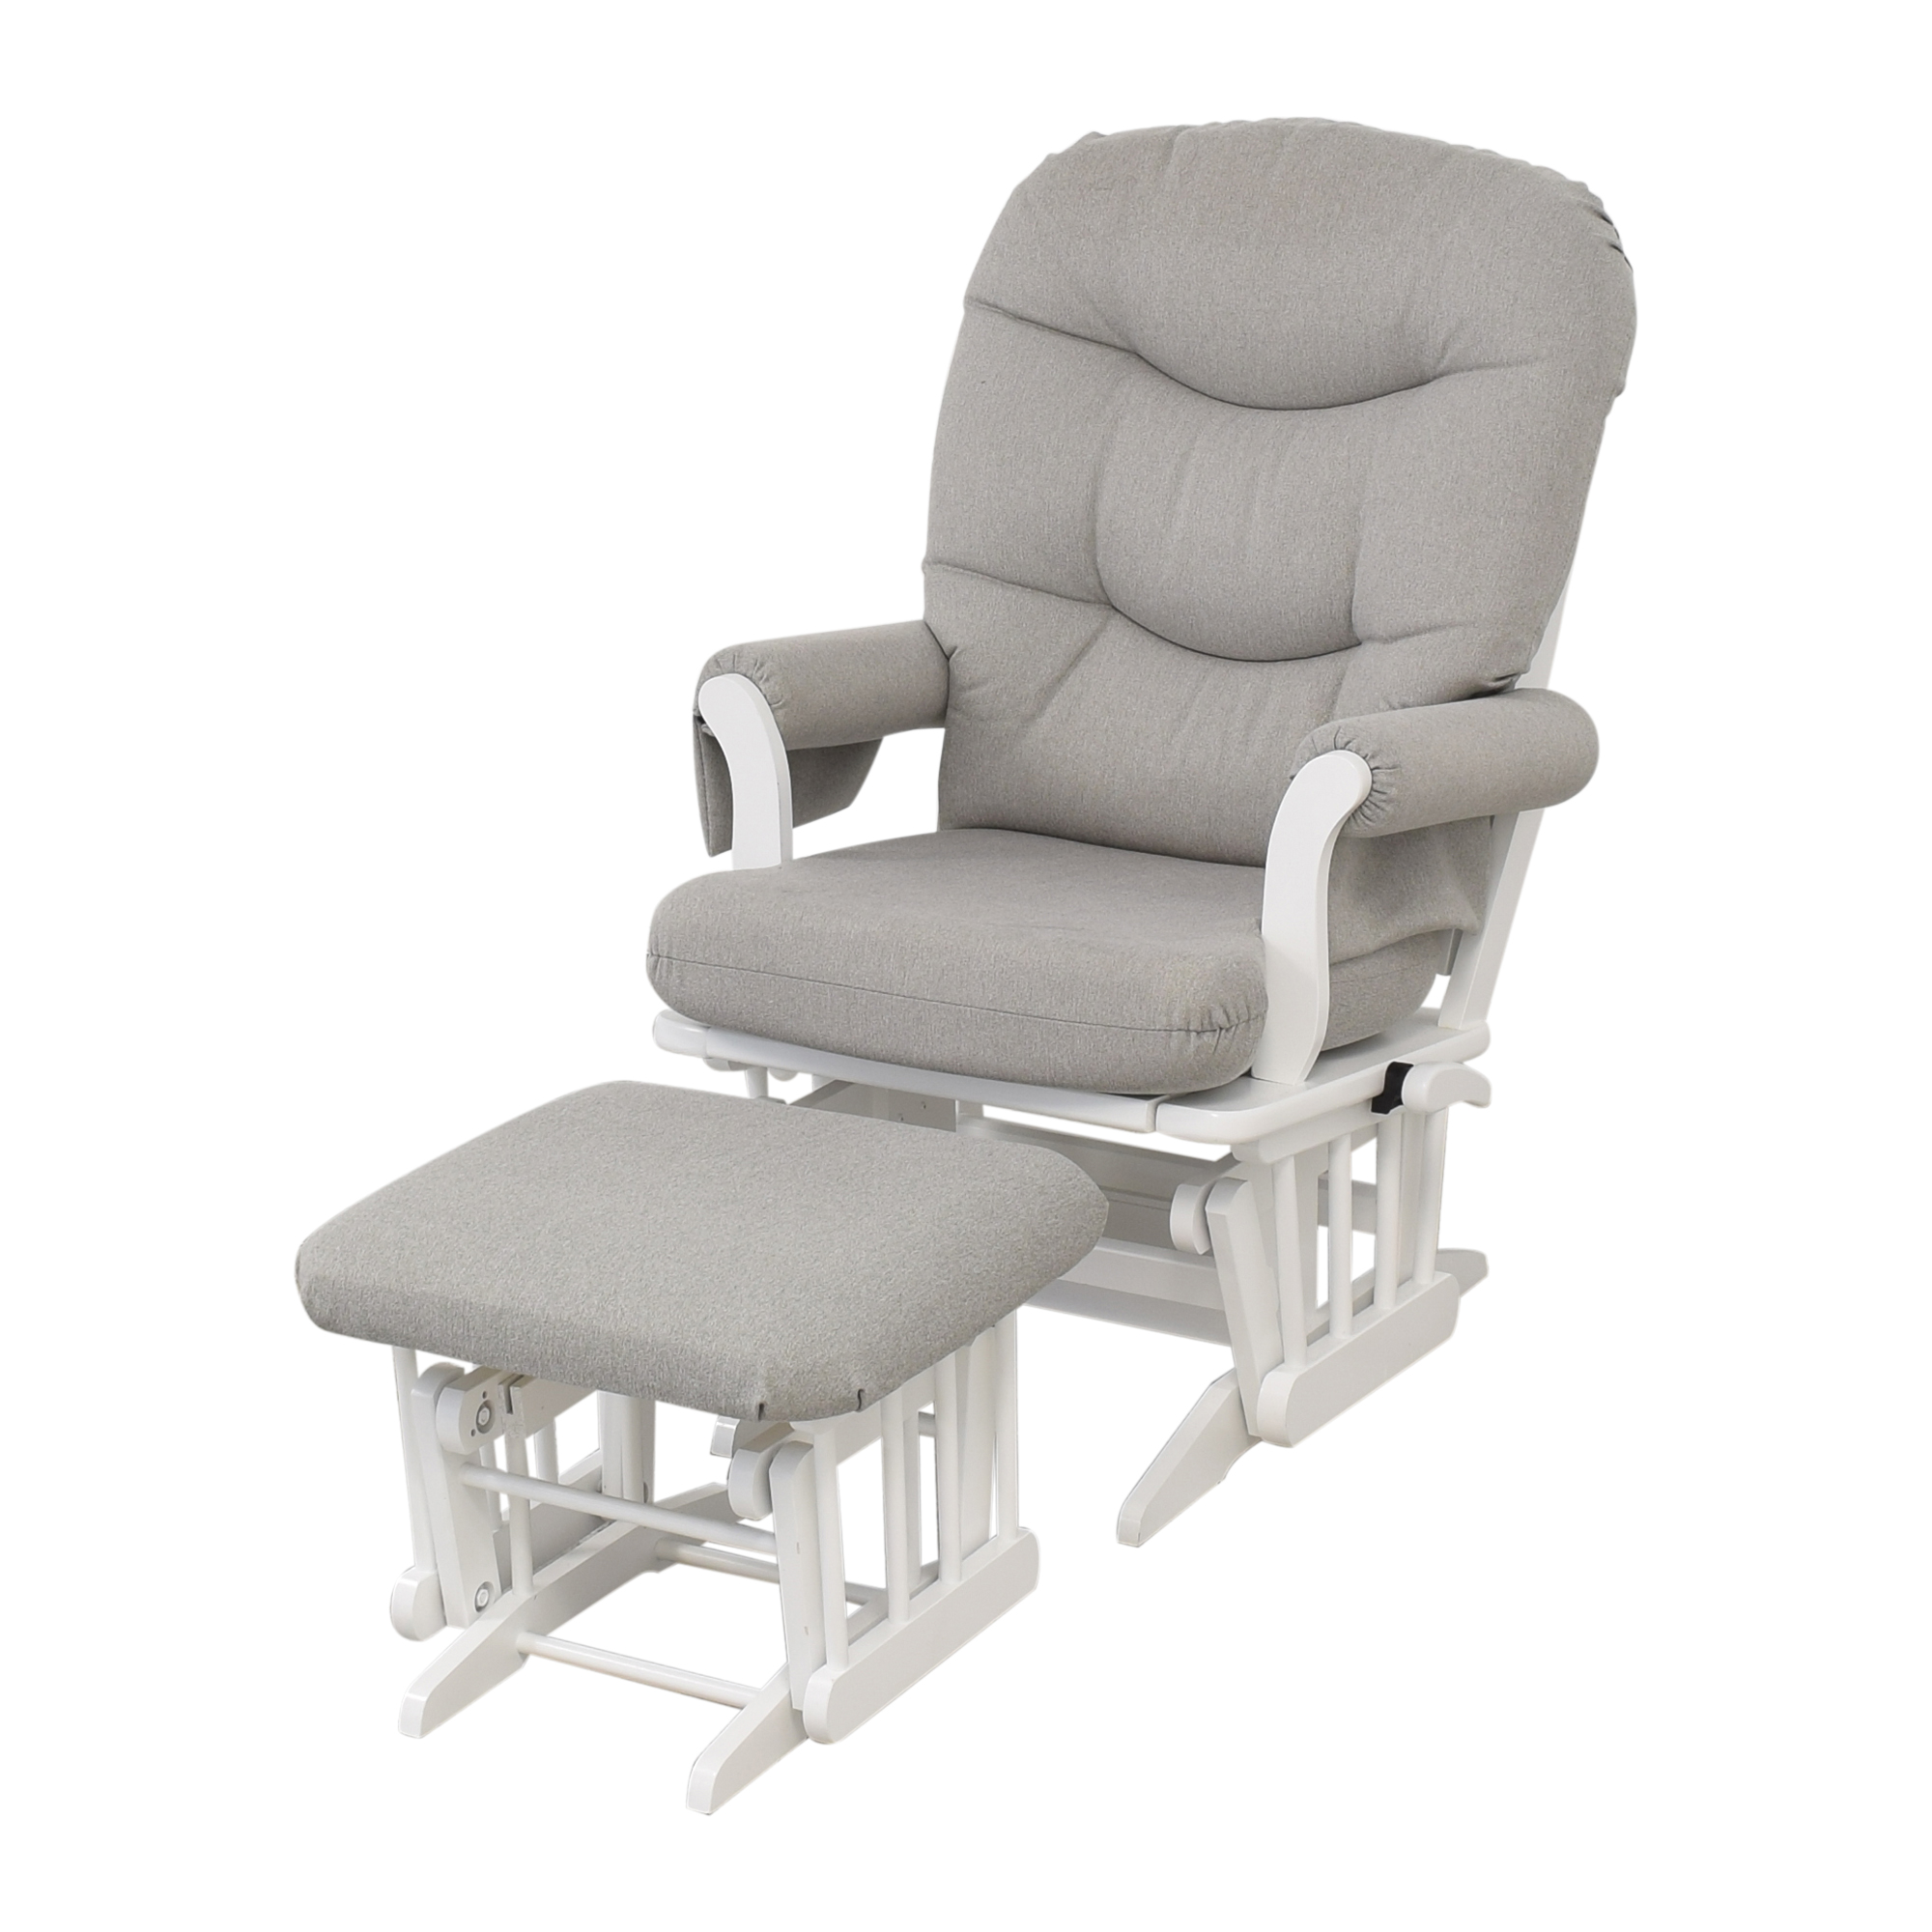 Dutailier Dutailier Multi-Position Reclining Sleigh Glider and Nursing Ottoman used